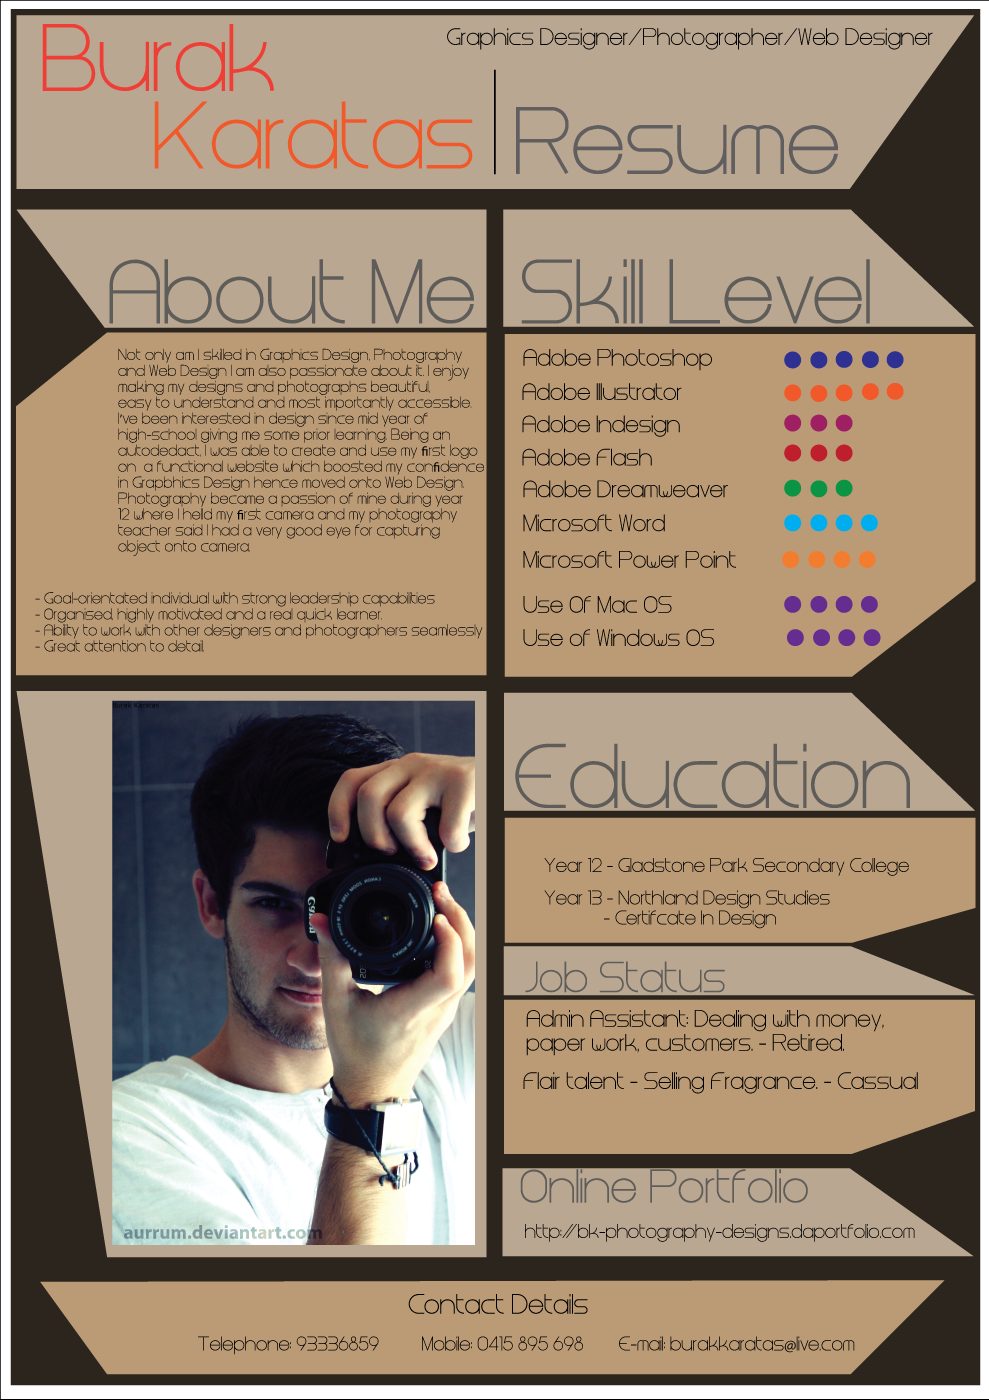 My Resume Design By Aurrum On Deviantart  Infographic Visual